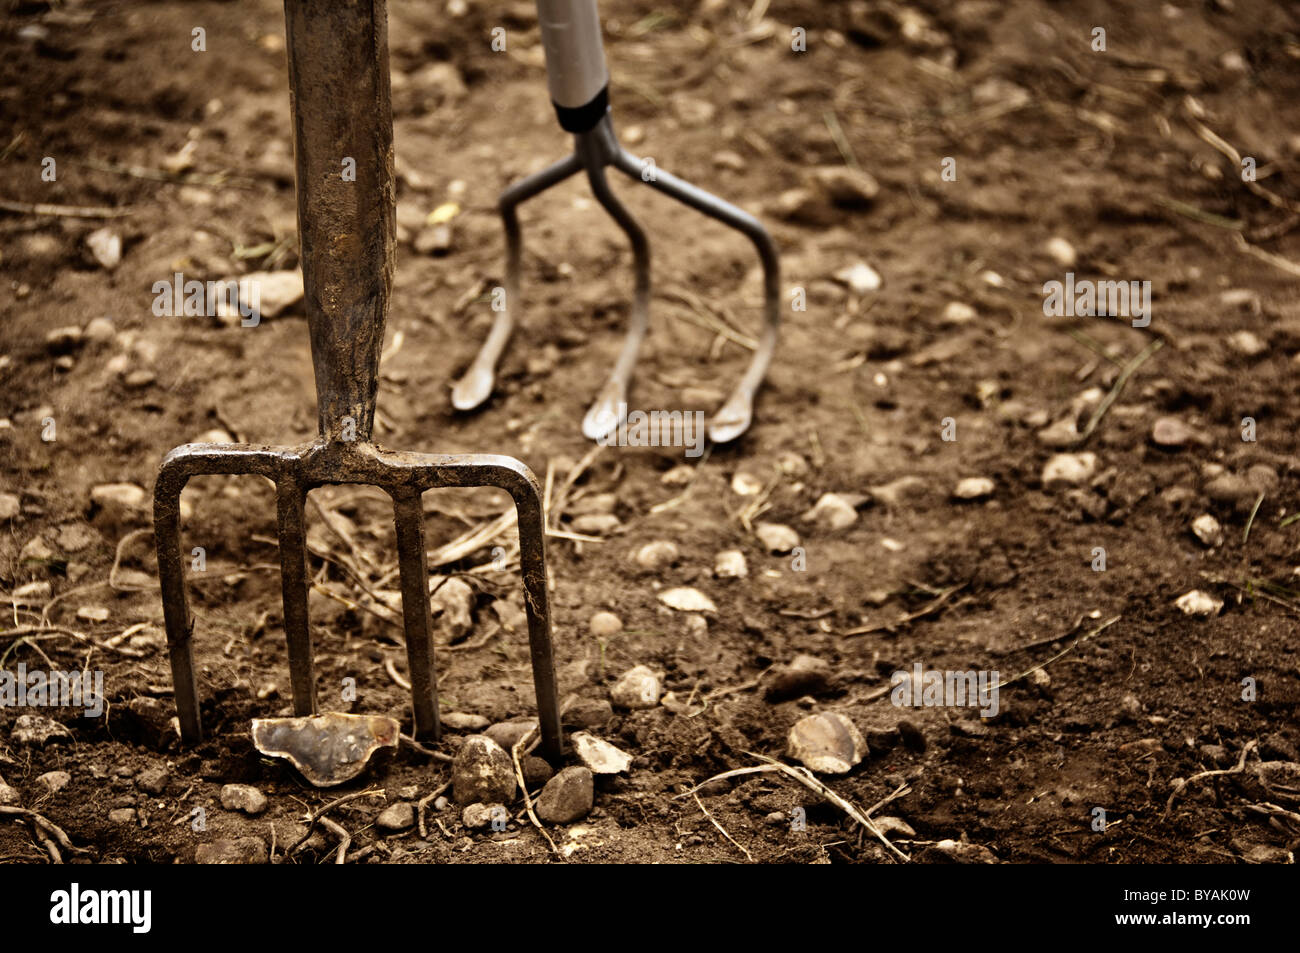 Garden fork and hoe - Stock Image